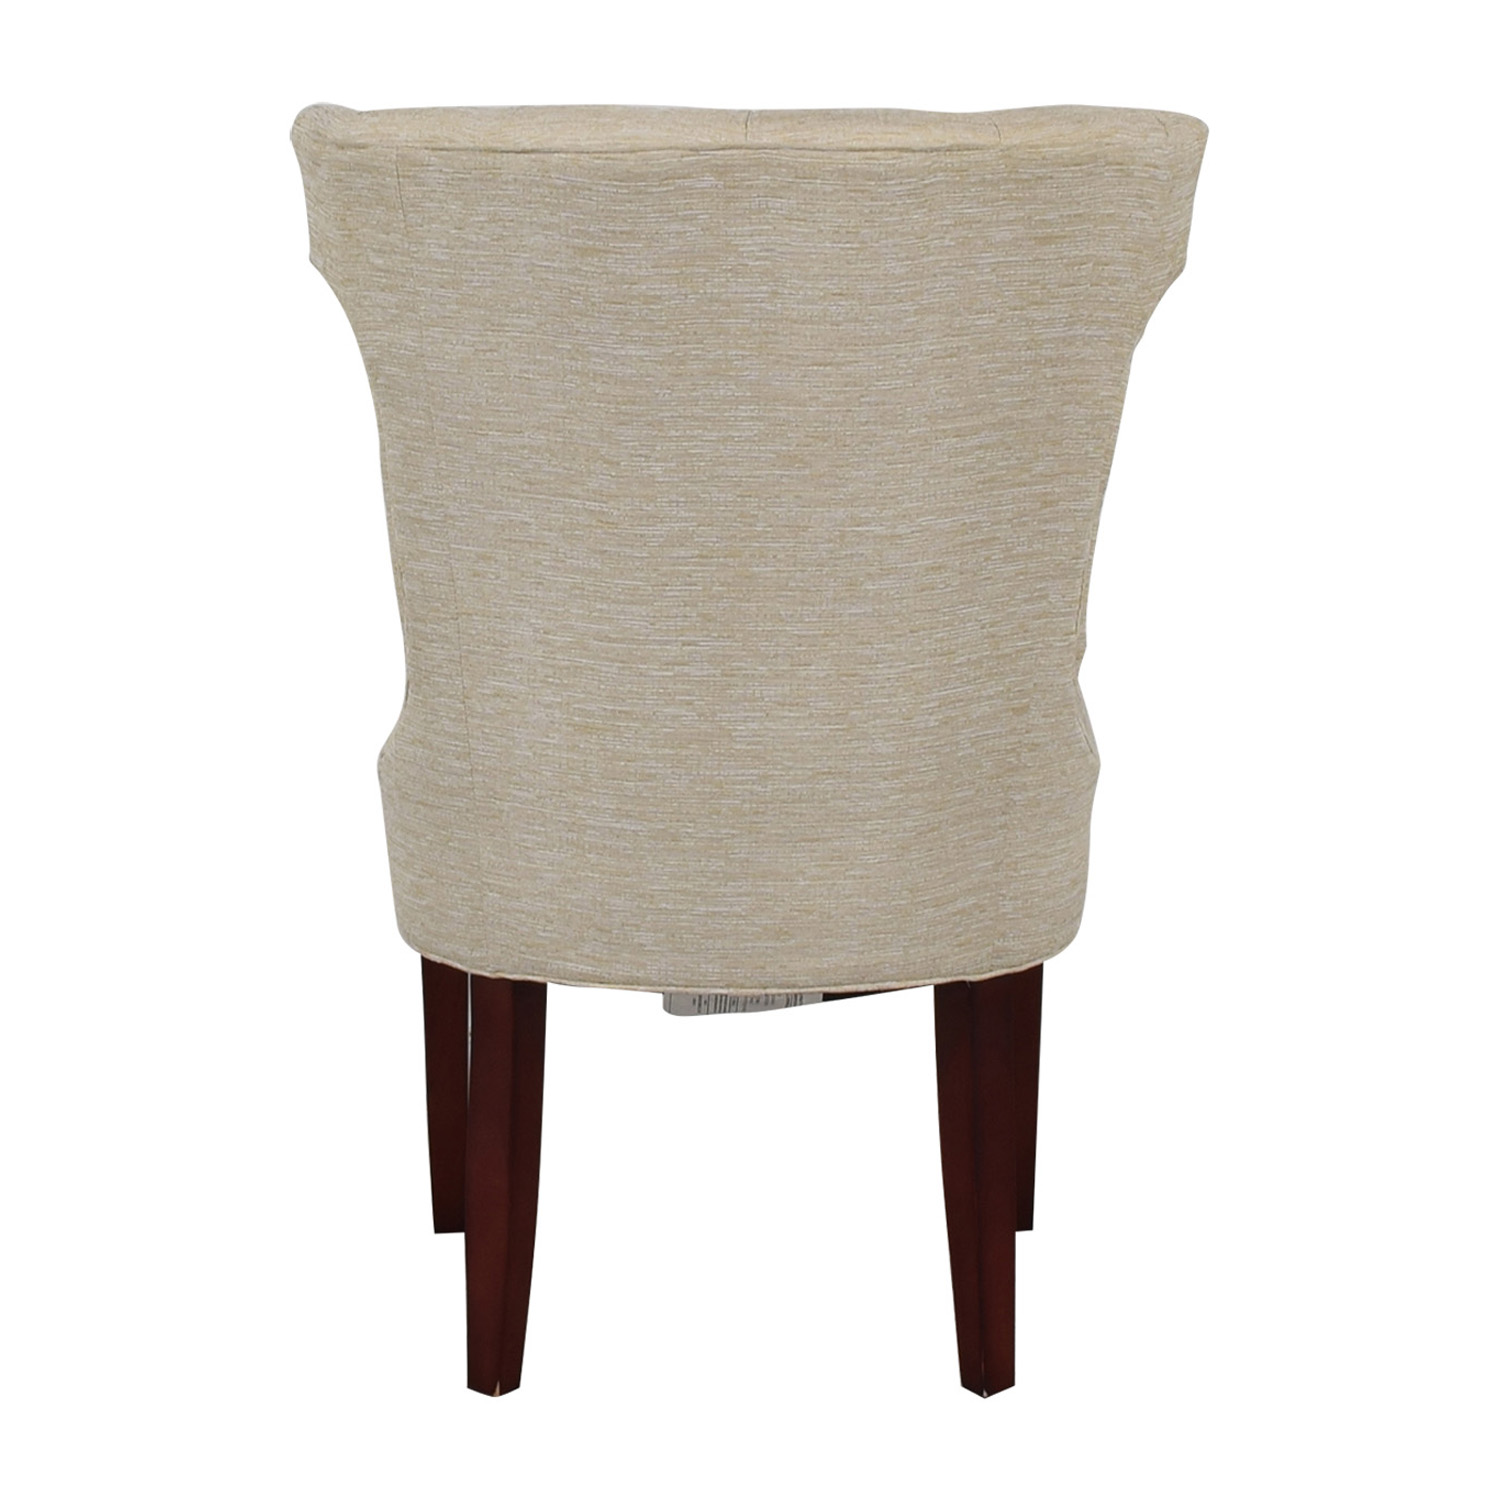 Cream Tufted Accent Chair on sale